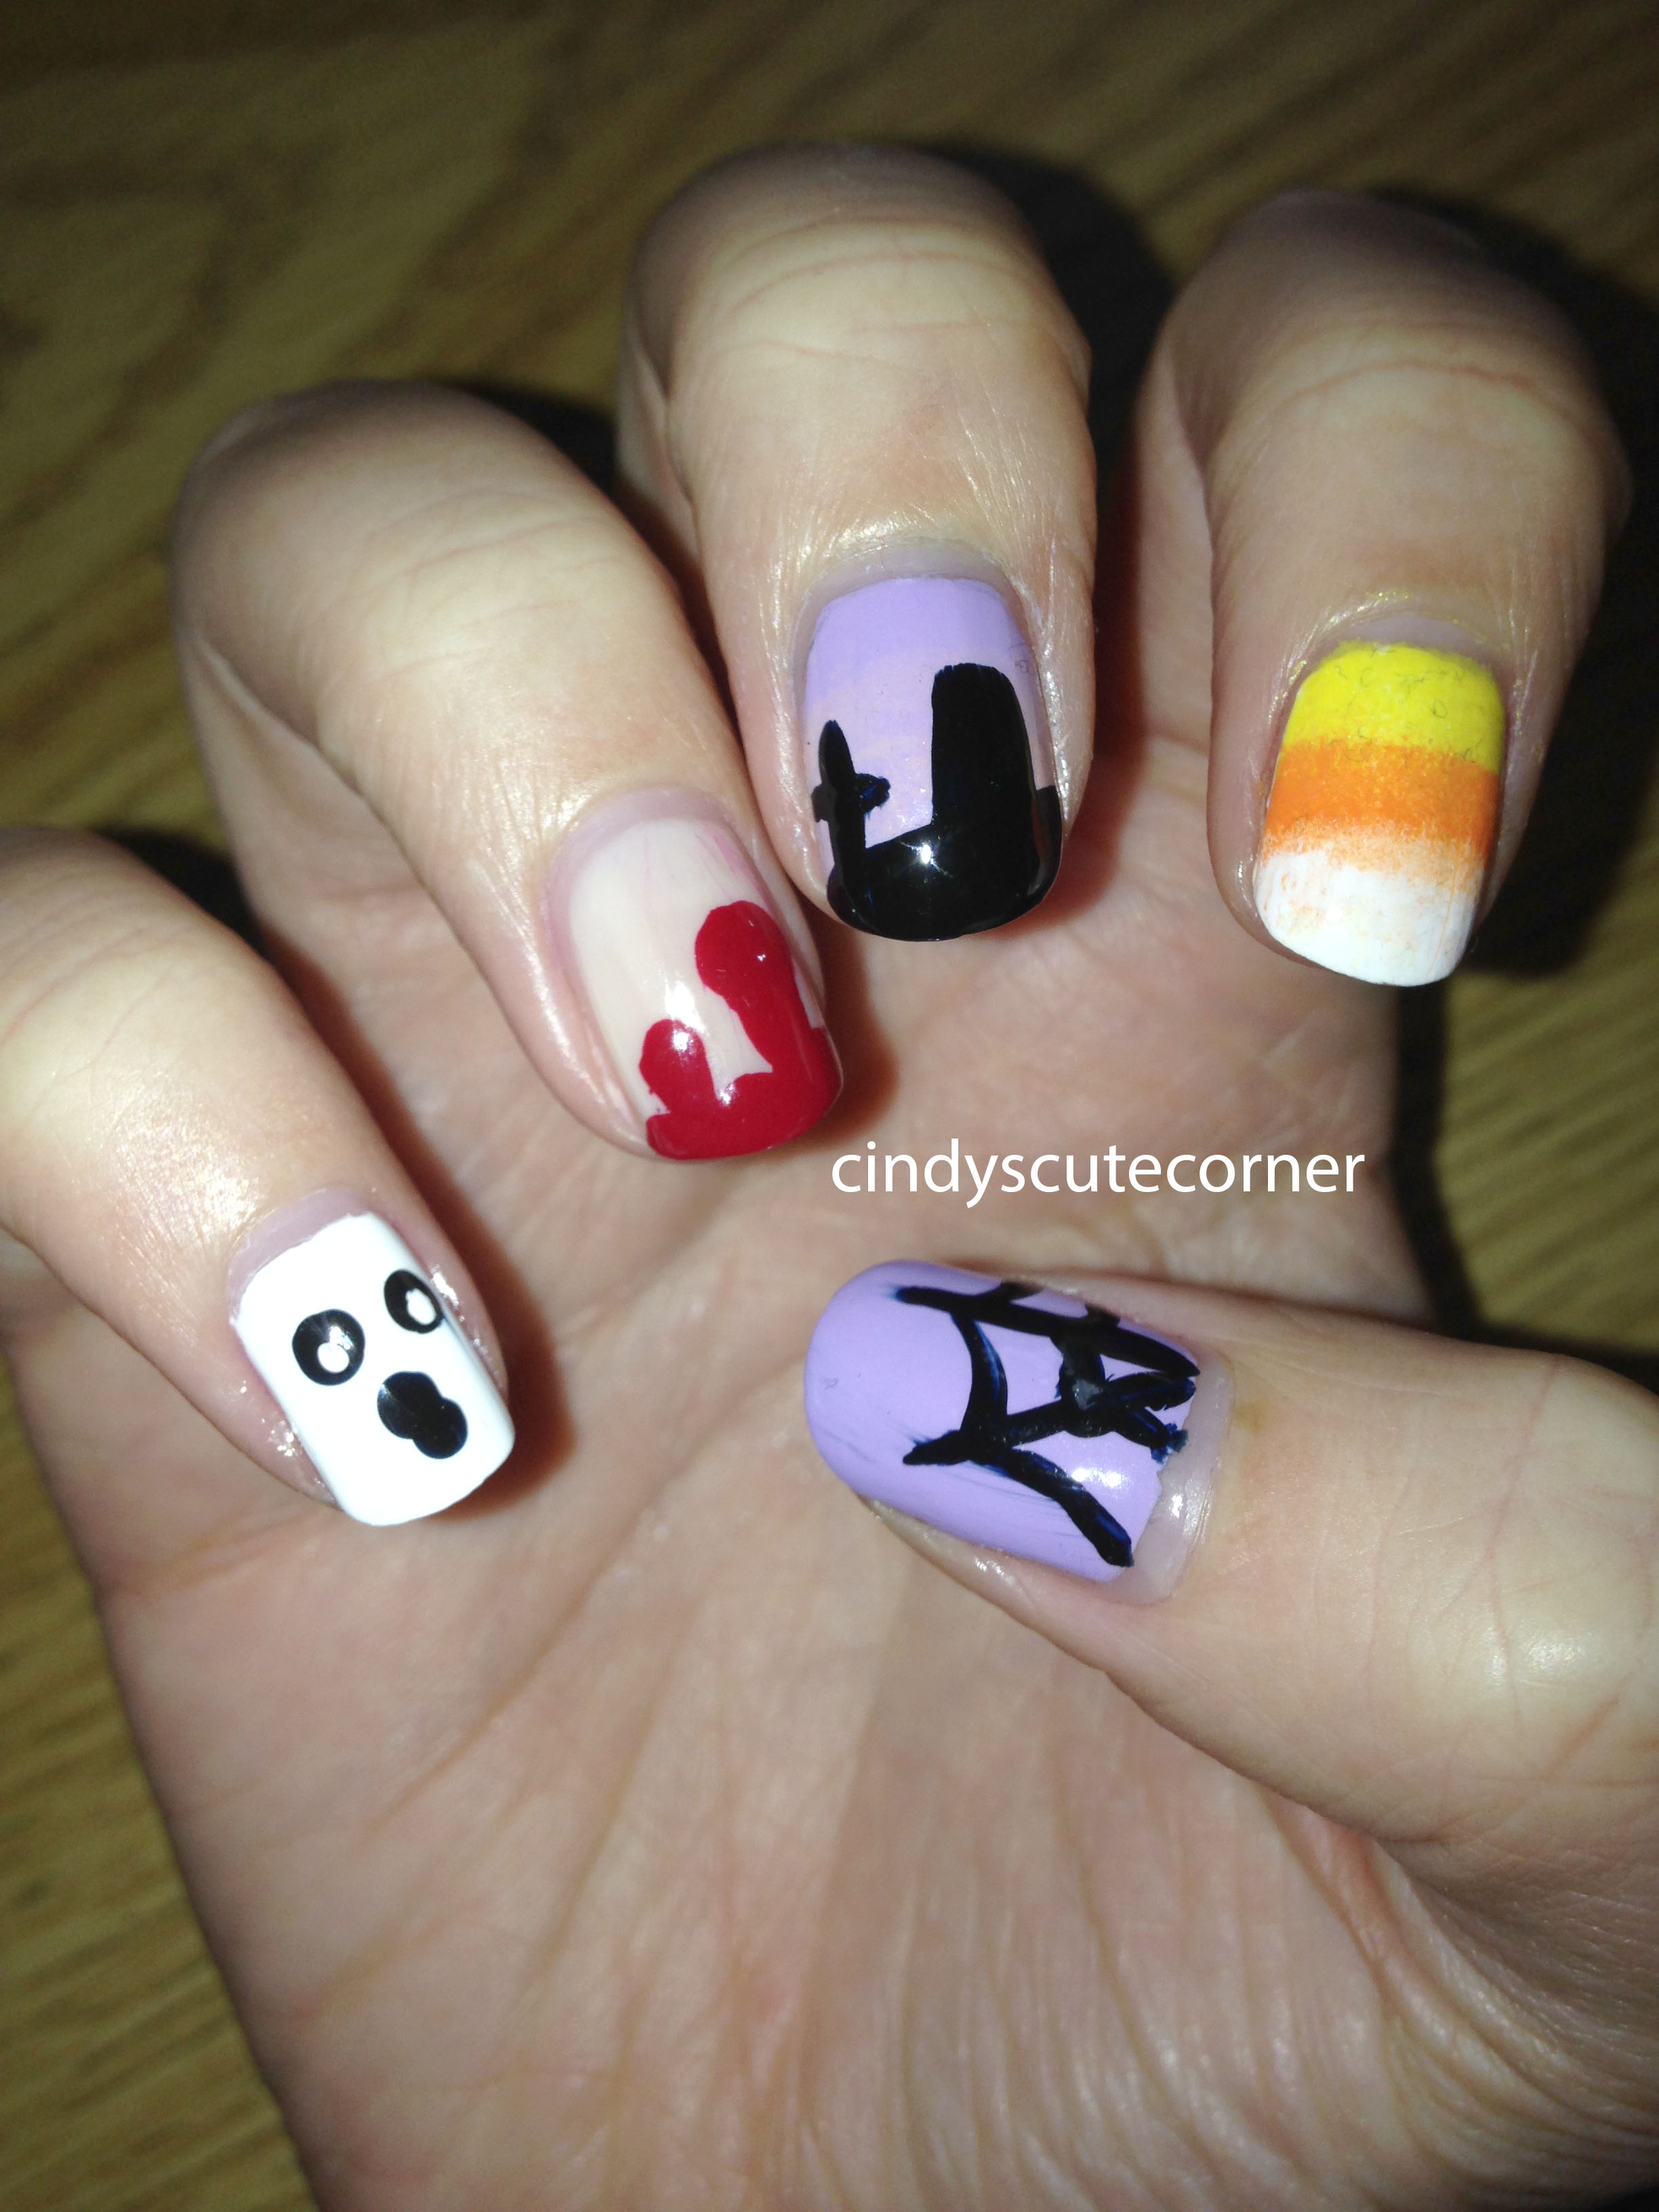 the ultimate halloween nails guide - cindy's cute corner